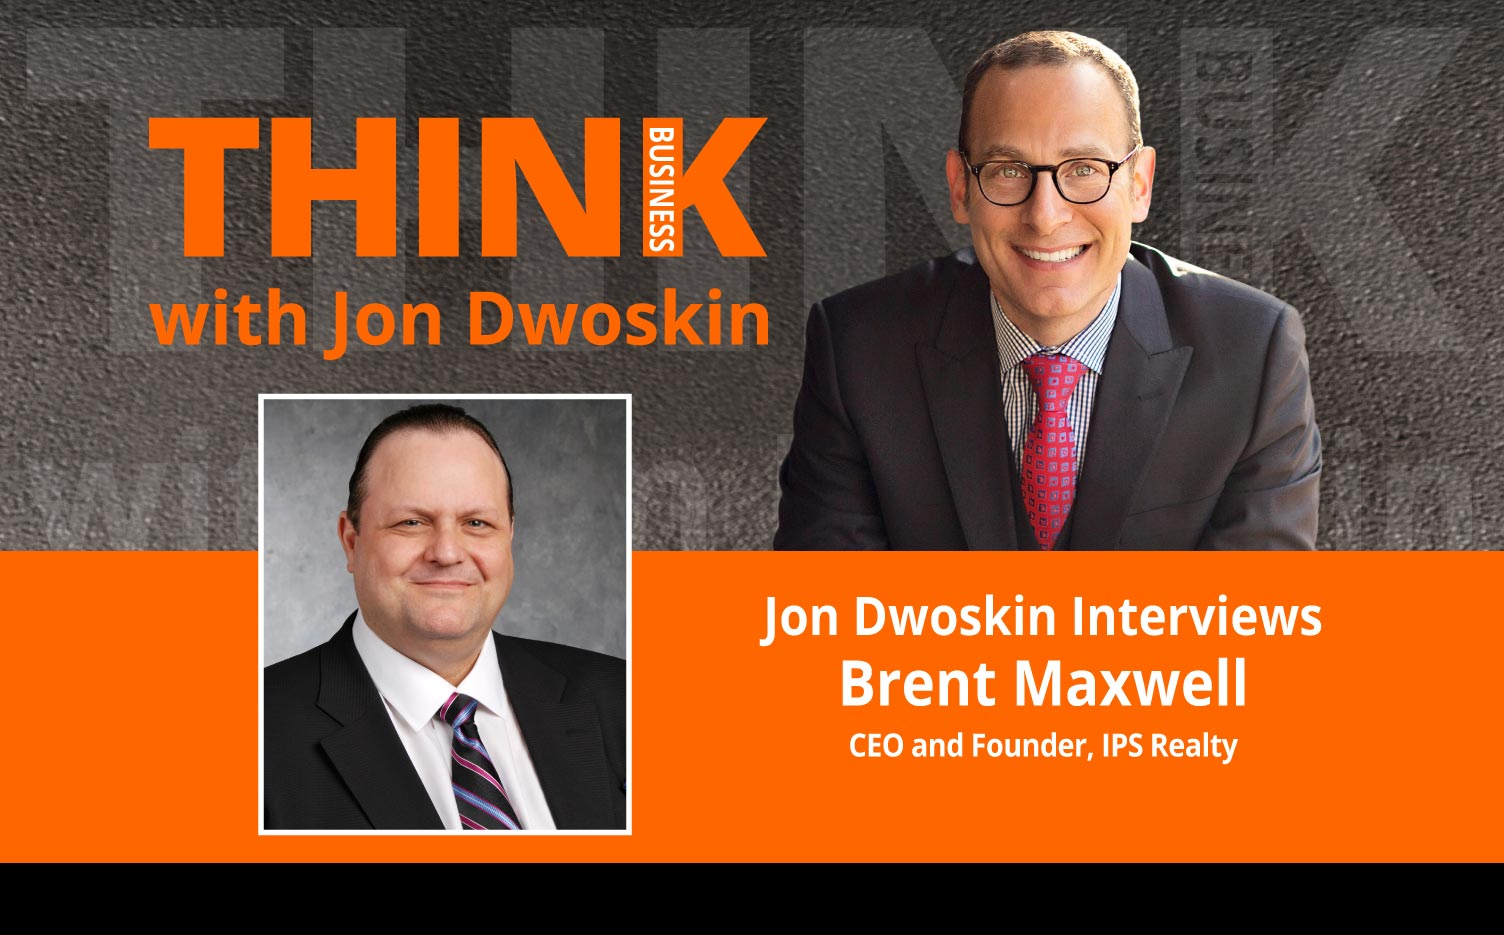 Jon Dwoskin Interviews Brent Maxwell, CEO and Founder, IPS Realty